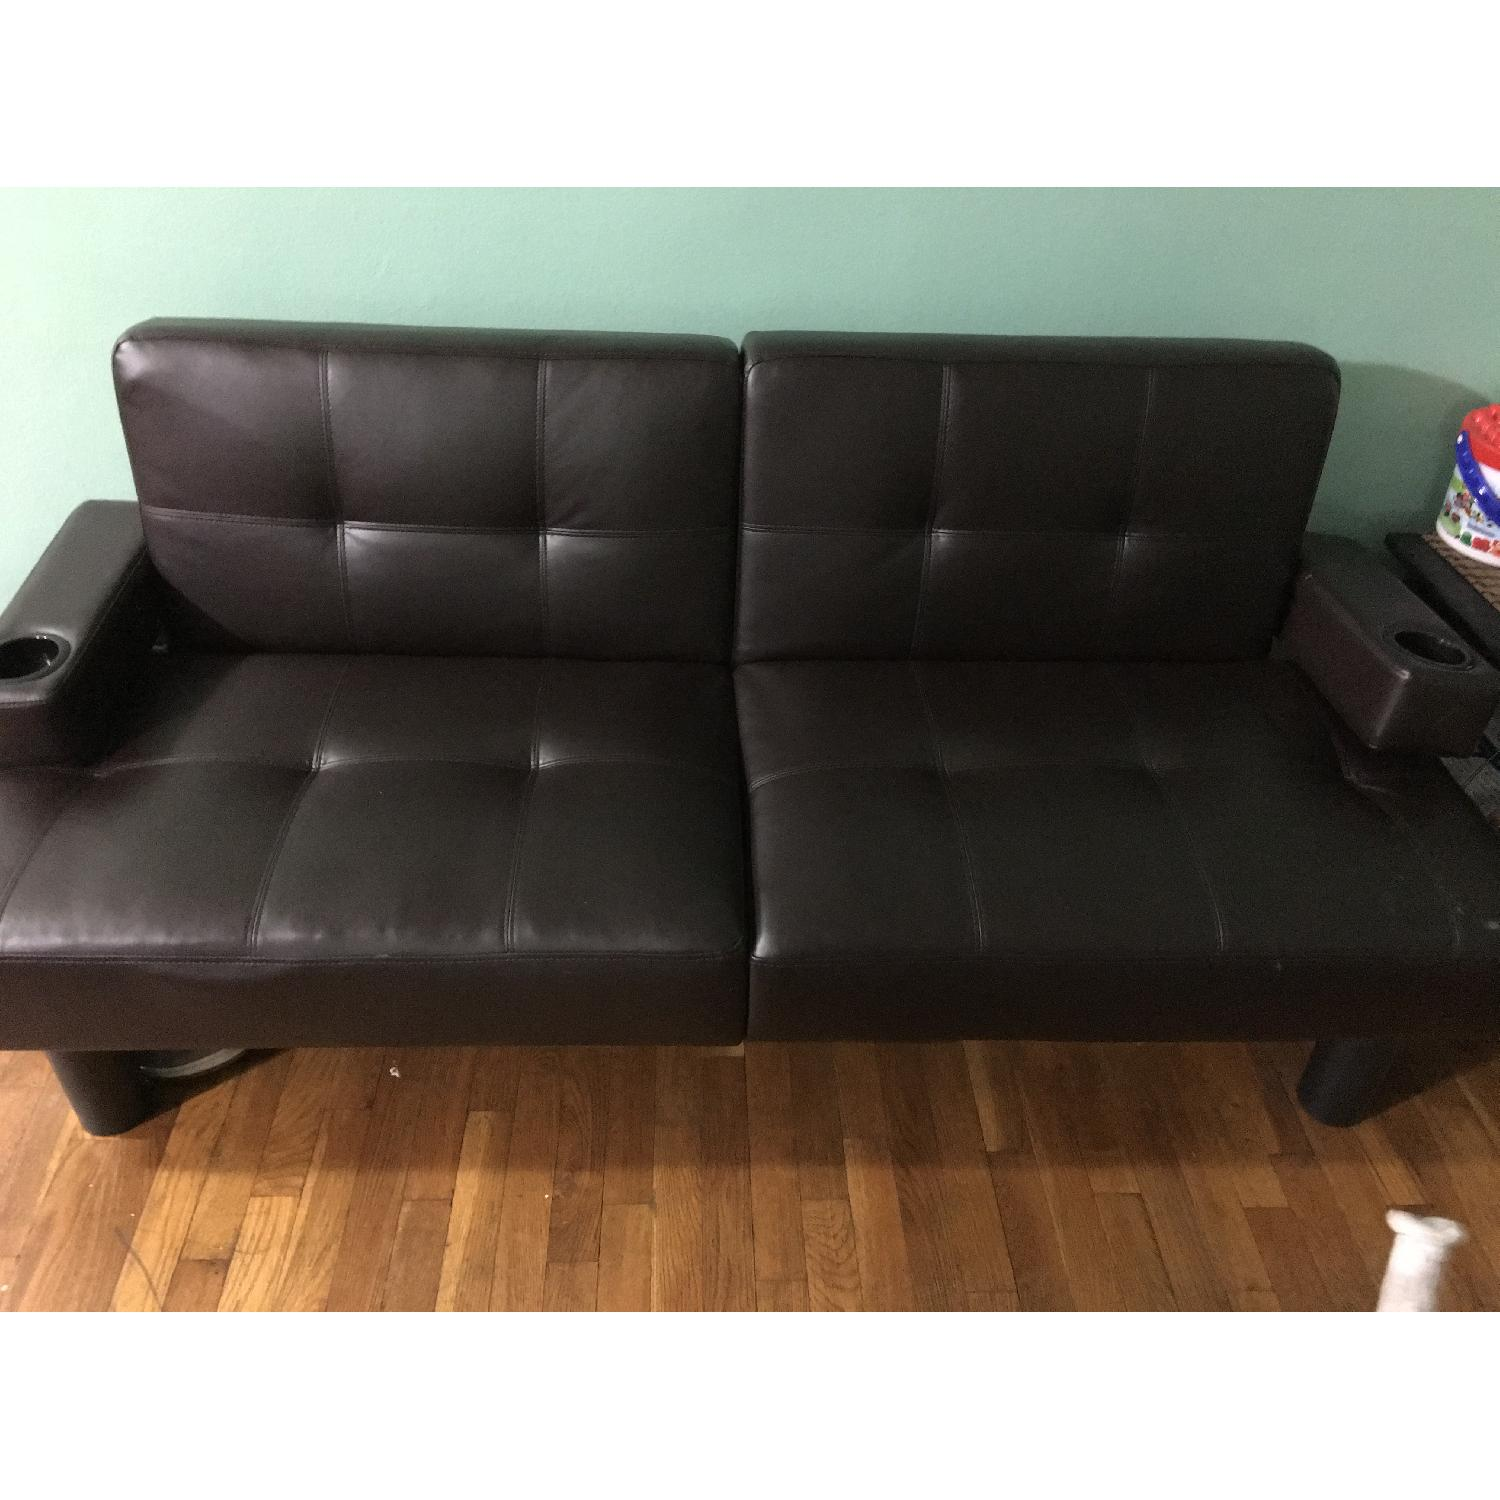 Corner Furniture Leather Sleeper Sofa - image-1